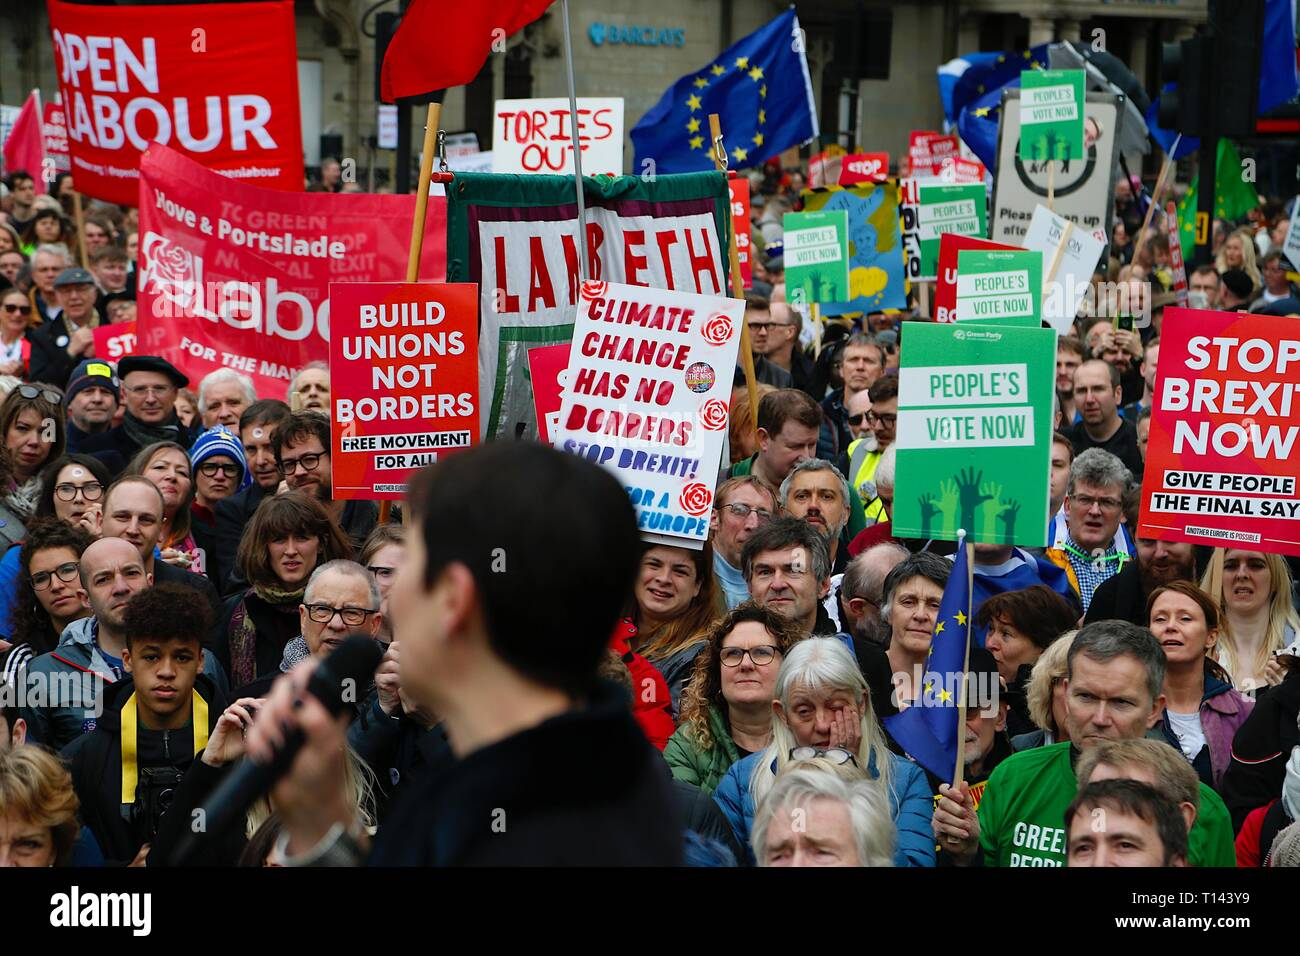 London, UK. 23 Mar, 2019. People's Vote March: Hundreds of thousands of pro-EU supporters attend a mass march to Westminster. People are expected to join the march from Park Lane to Parliament Square beginning at noon with speeches commencing at 2.45pm from all political party's. Caroline Lucas MP British Green Party politician, addresses the masses. ©Paul Lawrenson 2019, Photo Credit: Paul Lawrenson/Alamy Live News Stock Photo